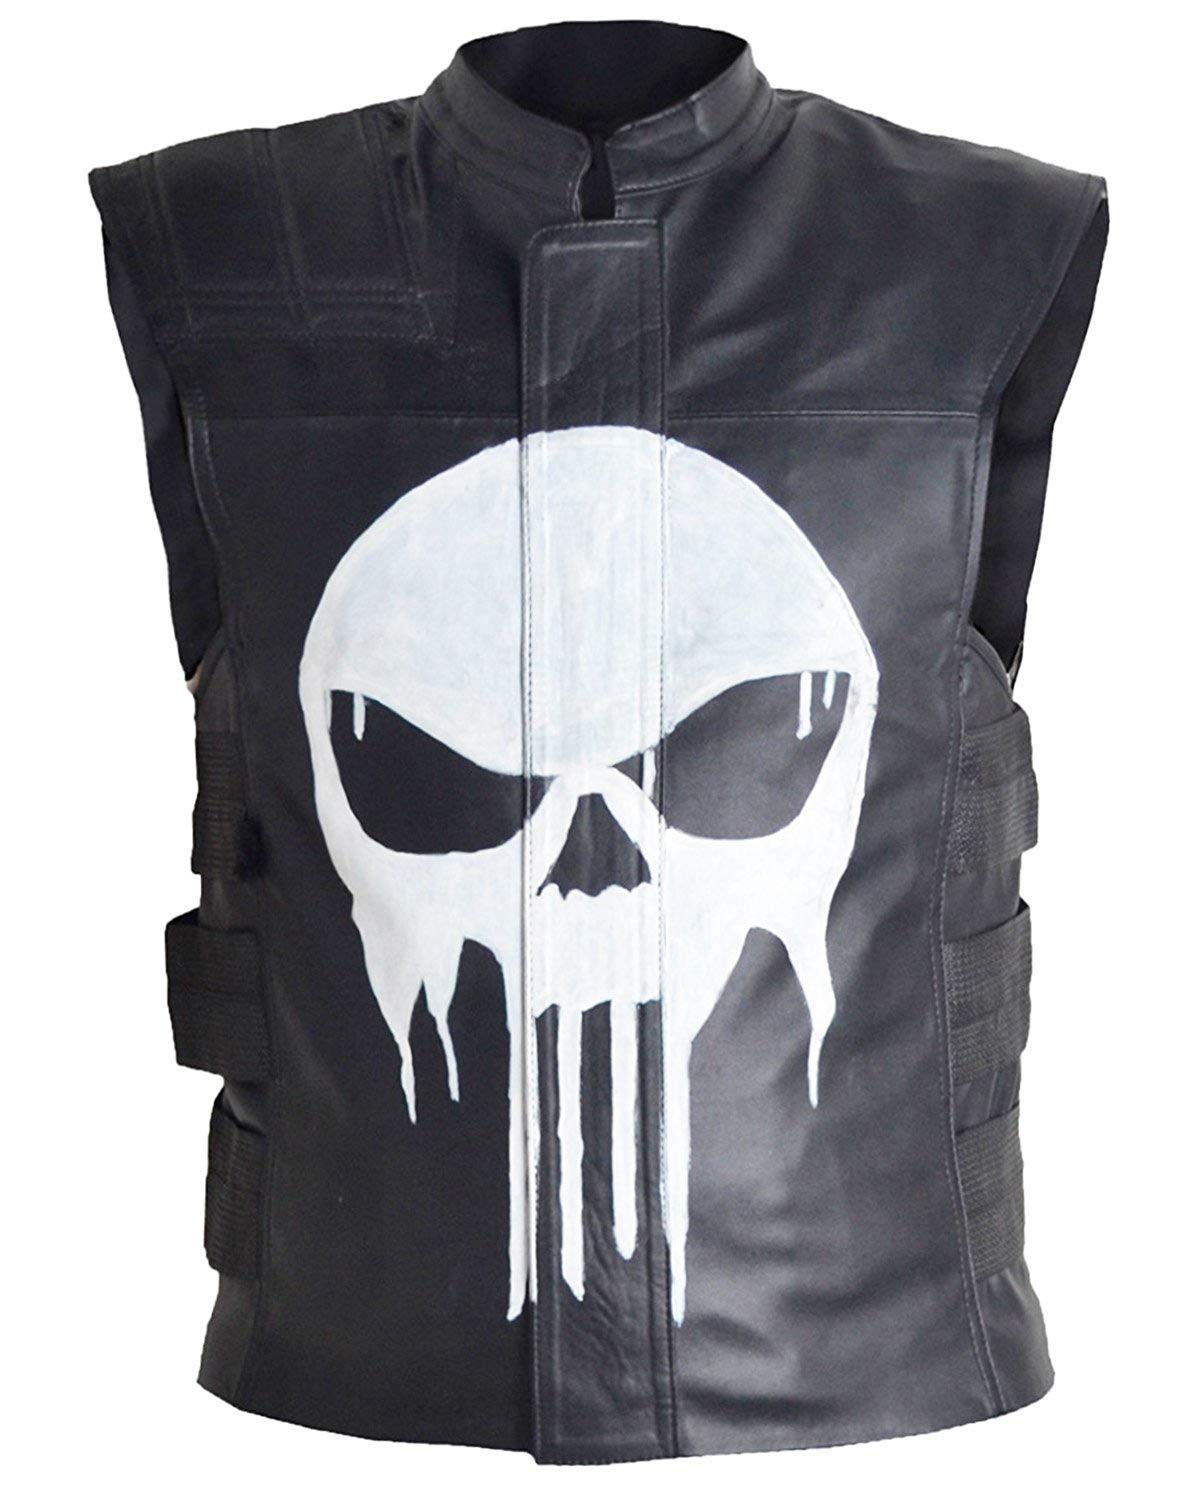 Thomas Janes The Punisher Leather Vest In 2021 Leather Vest Leather Biker Vest Black Leather Vest [ 1500 x 1200 Pixel ]